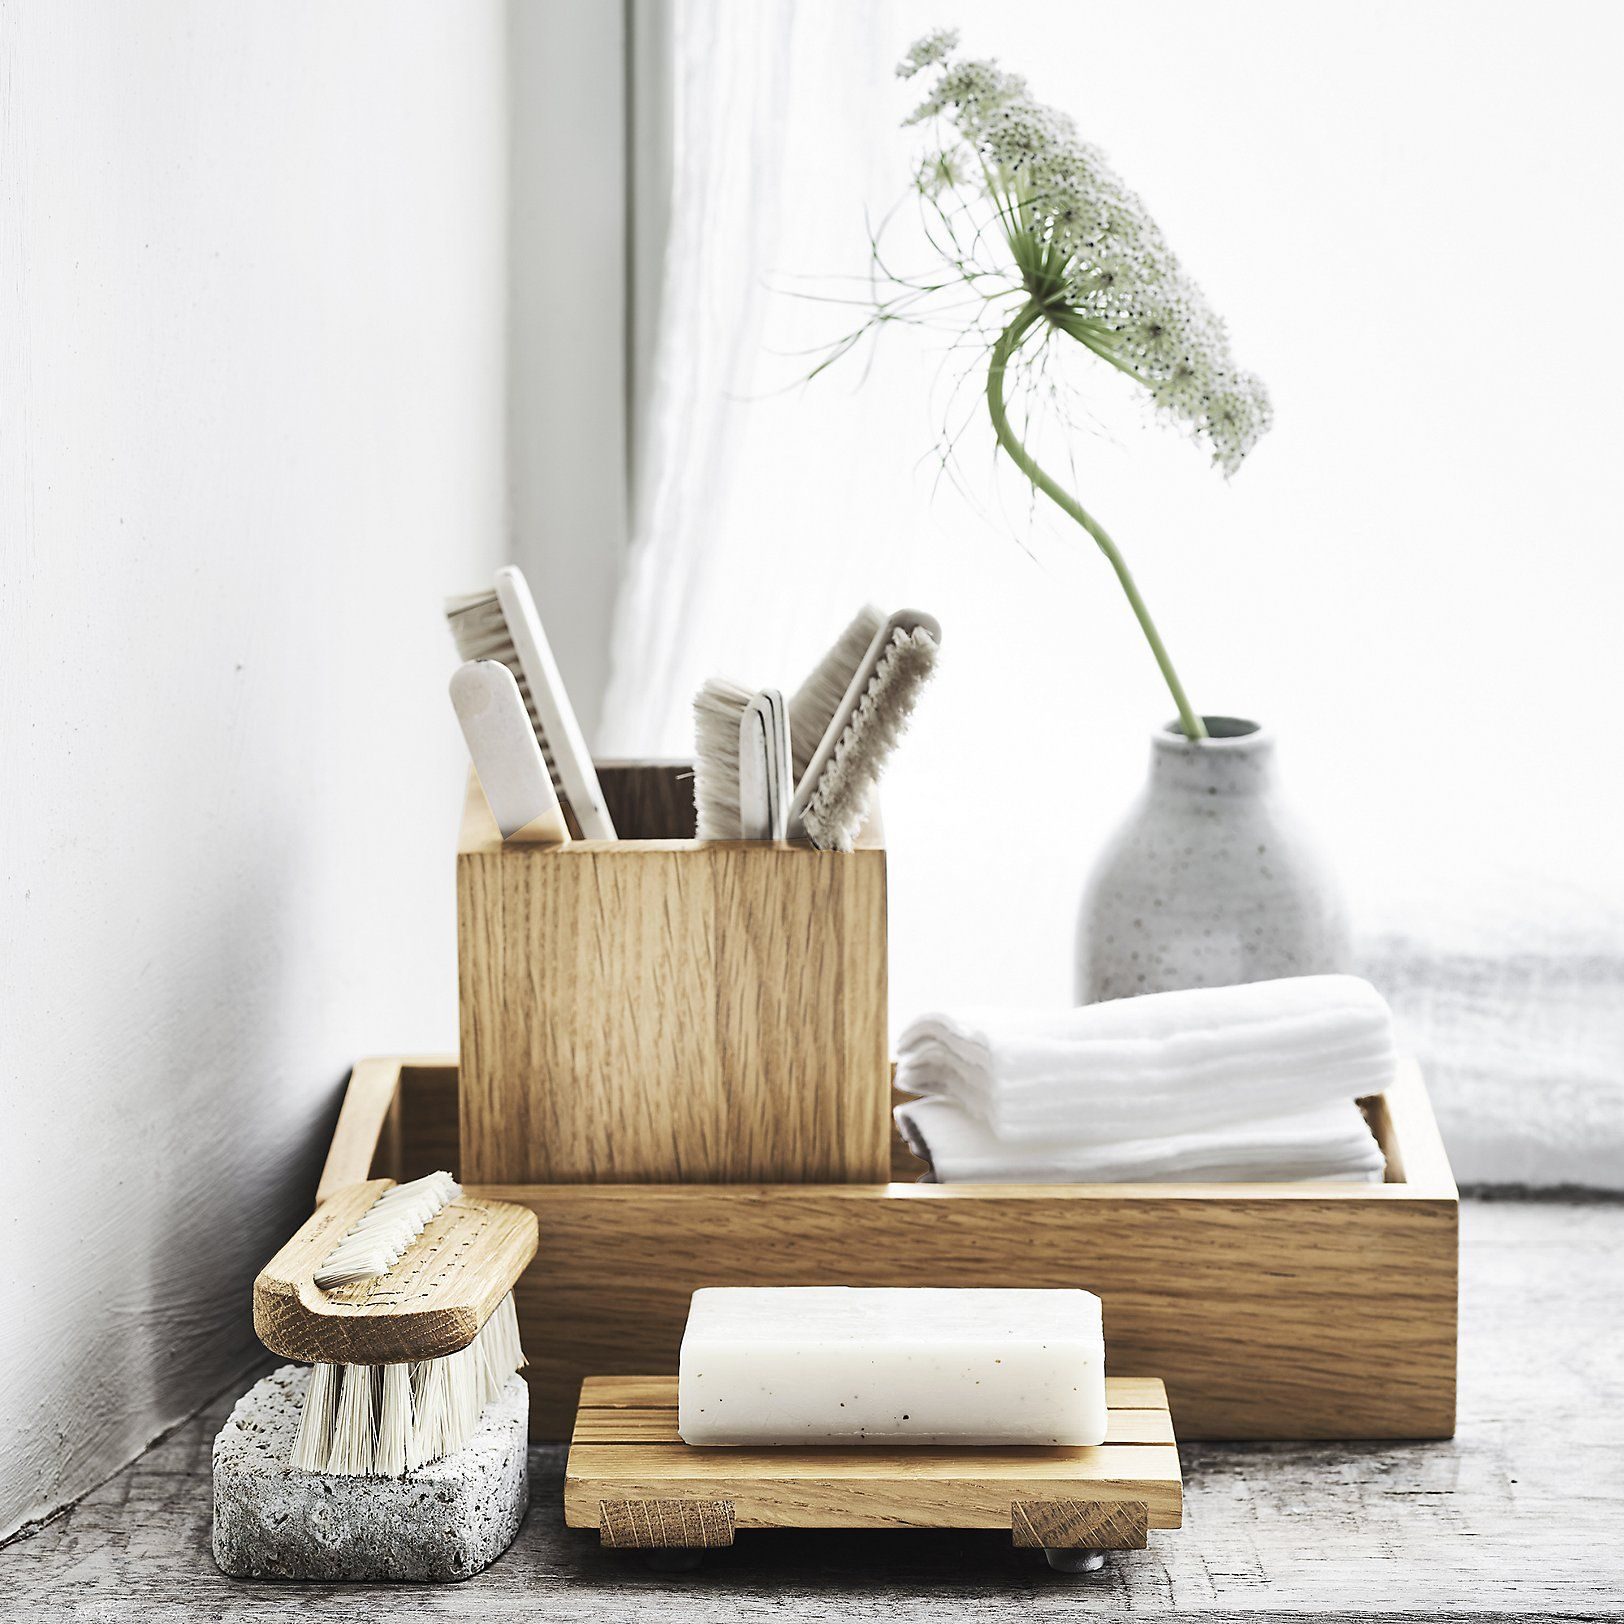 Wooden Soap Dish | Pinterest | White company, Soap dishes and ...